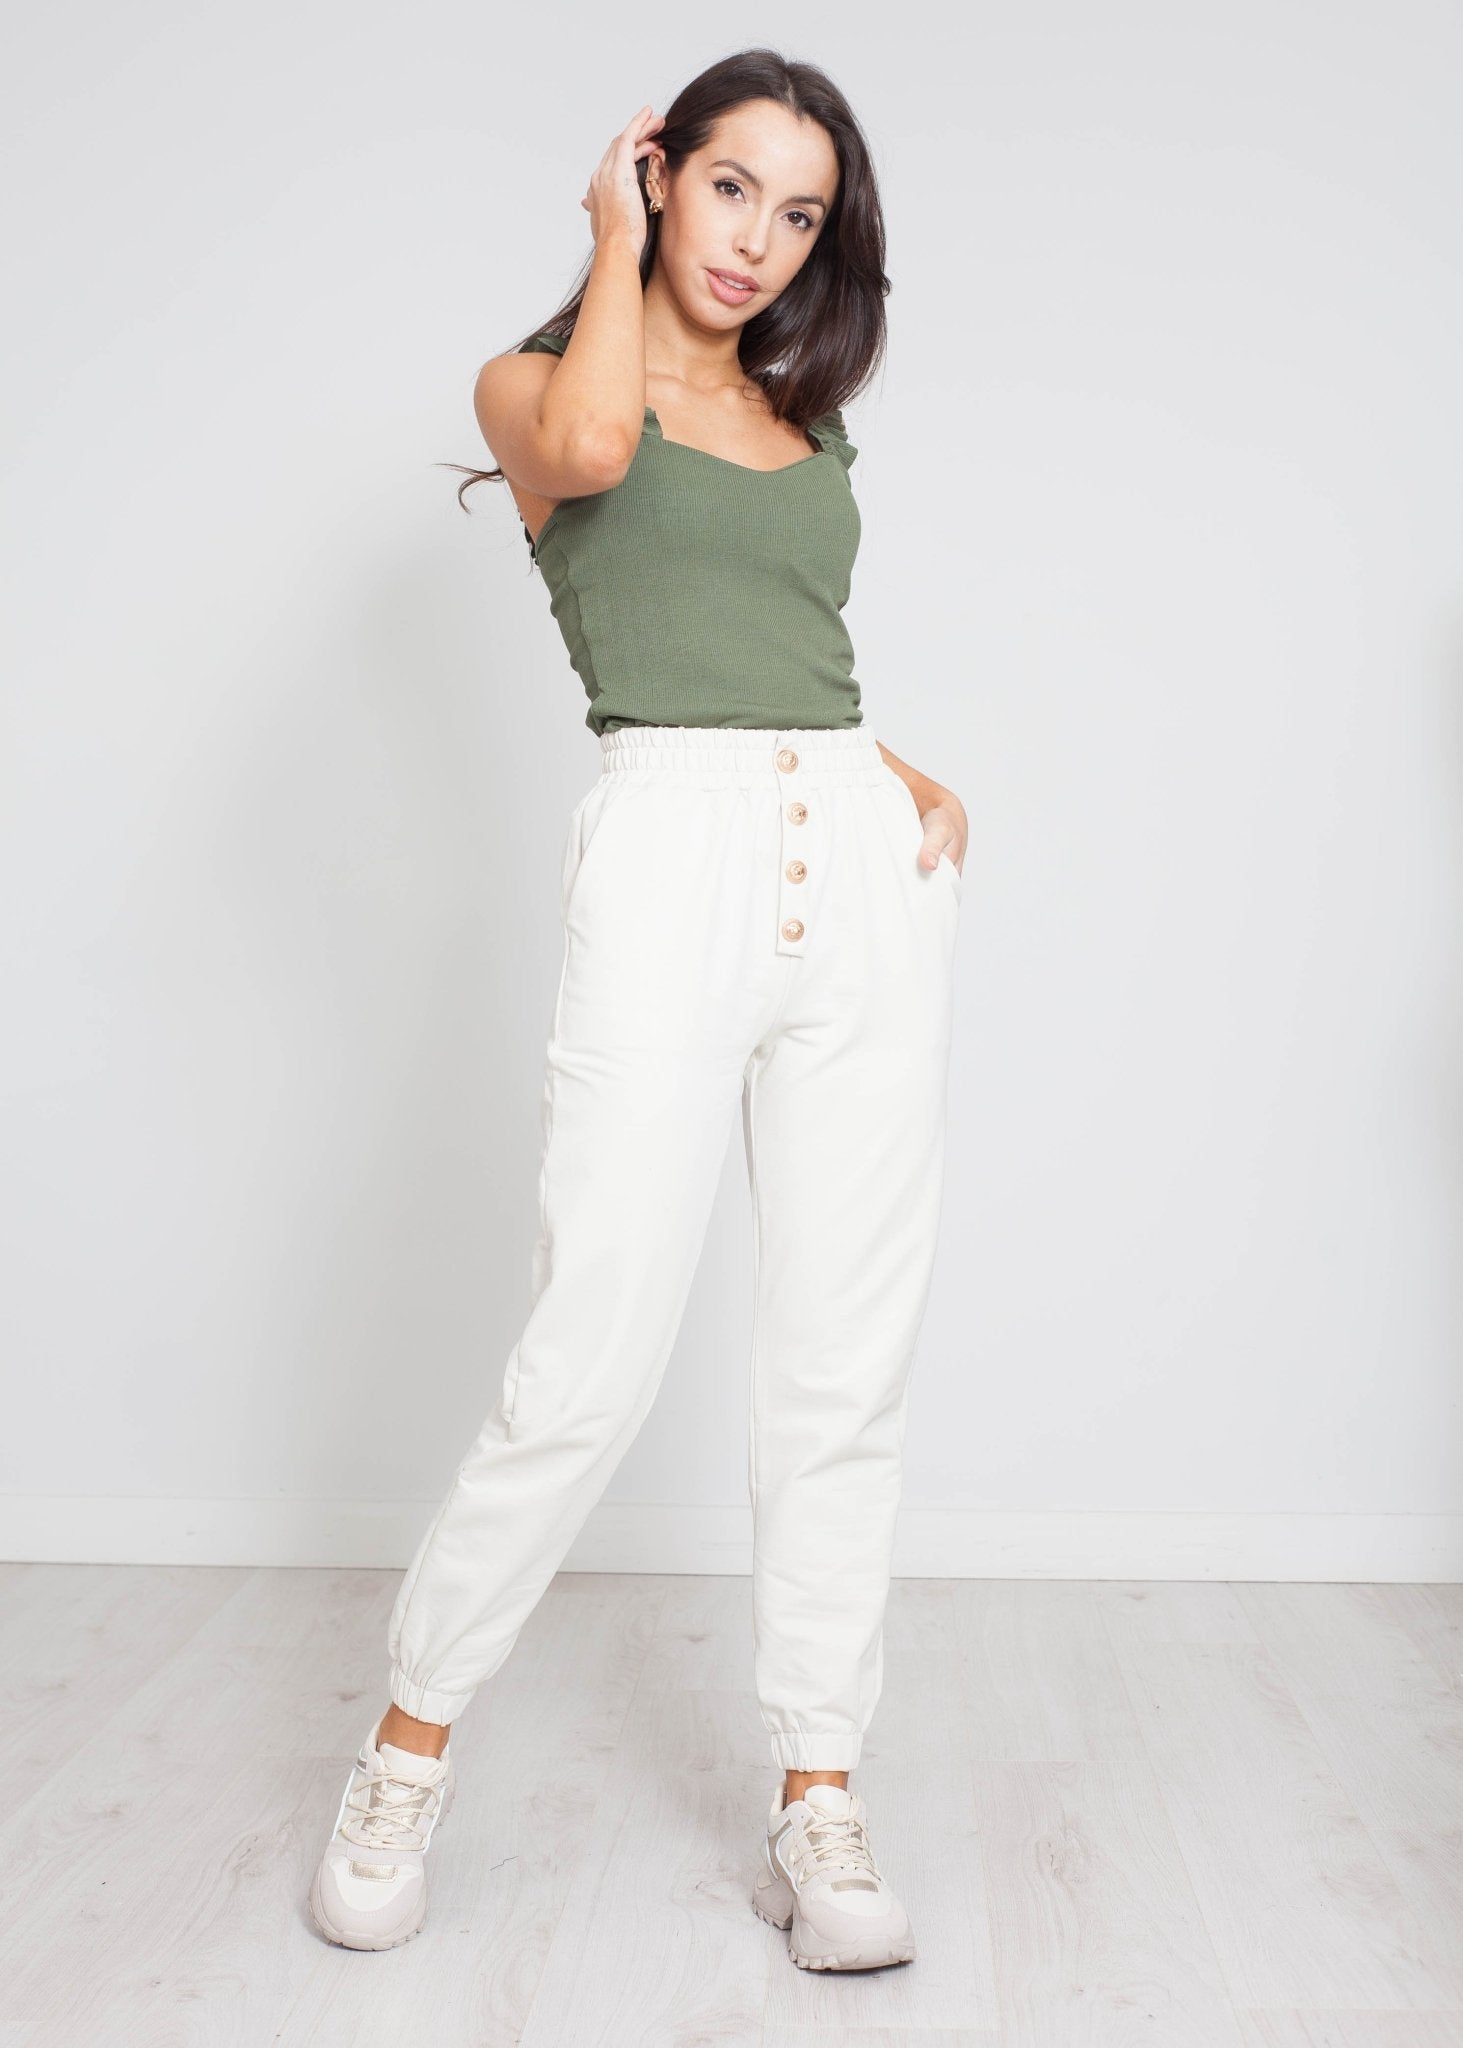 Scarlet Button Joggers In Stone - The Walk in Wardrobe